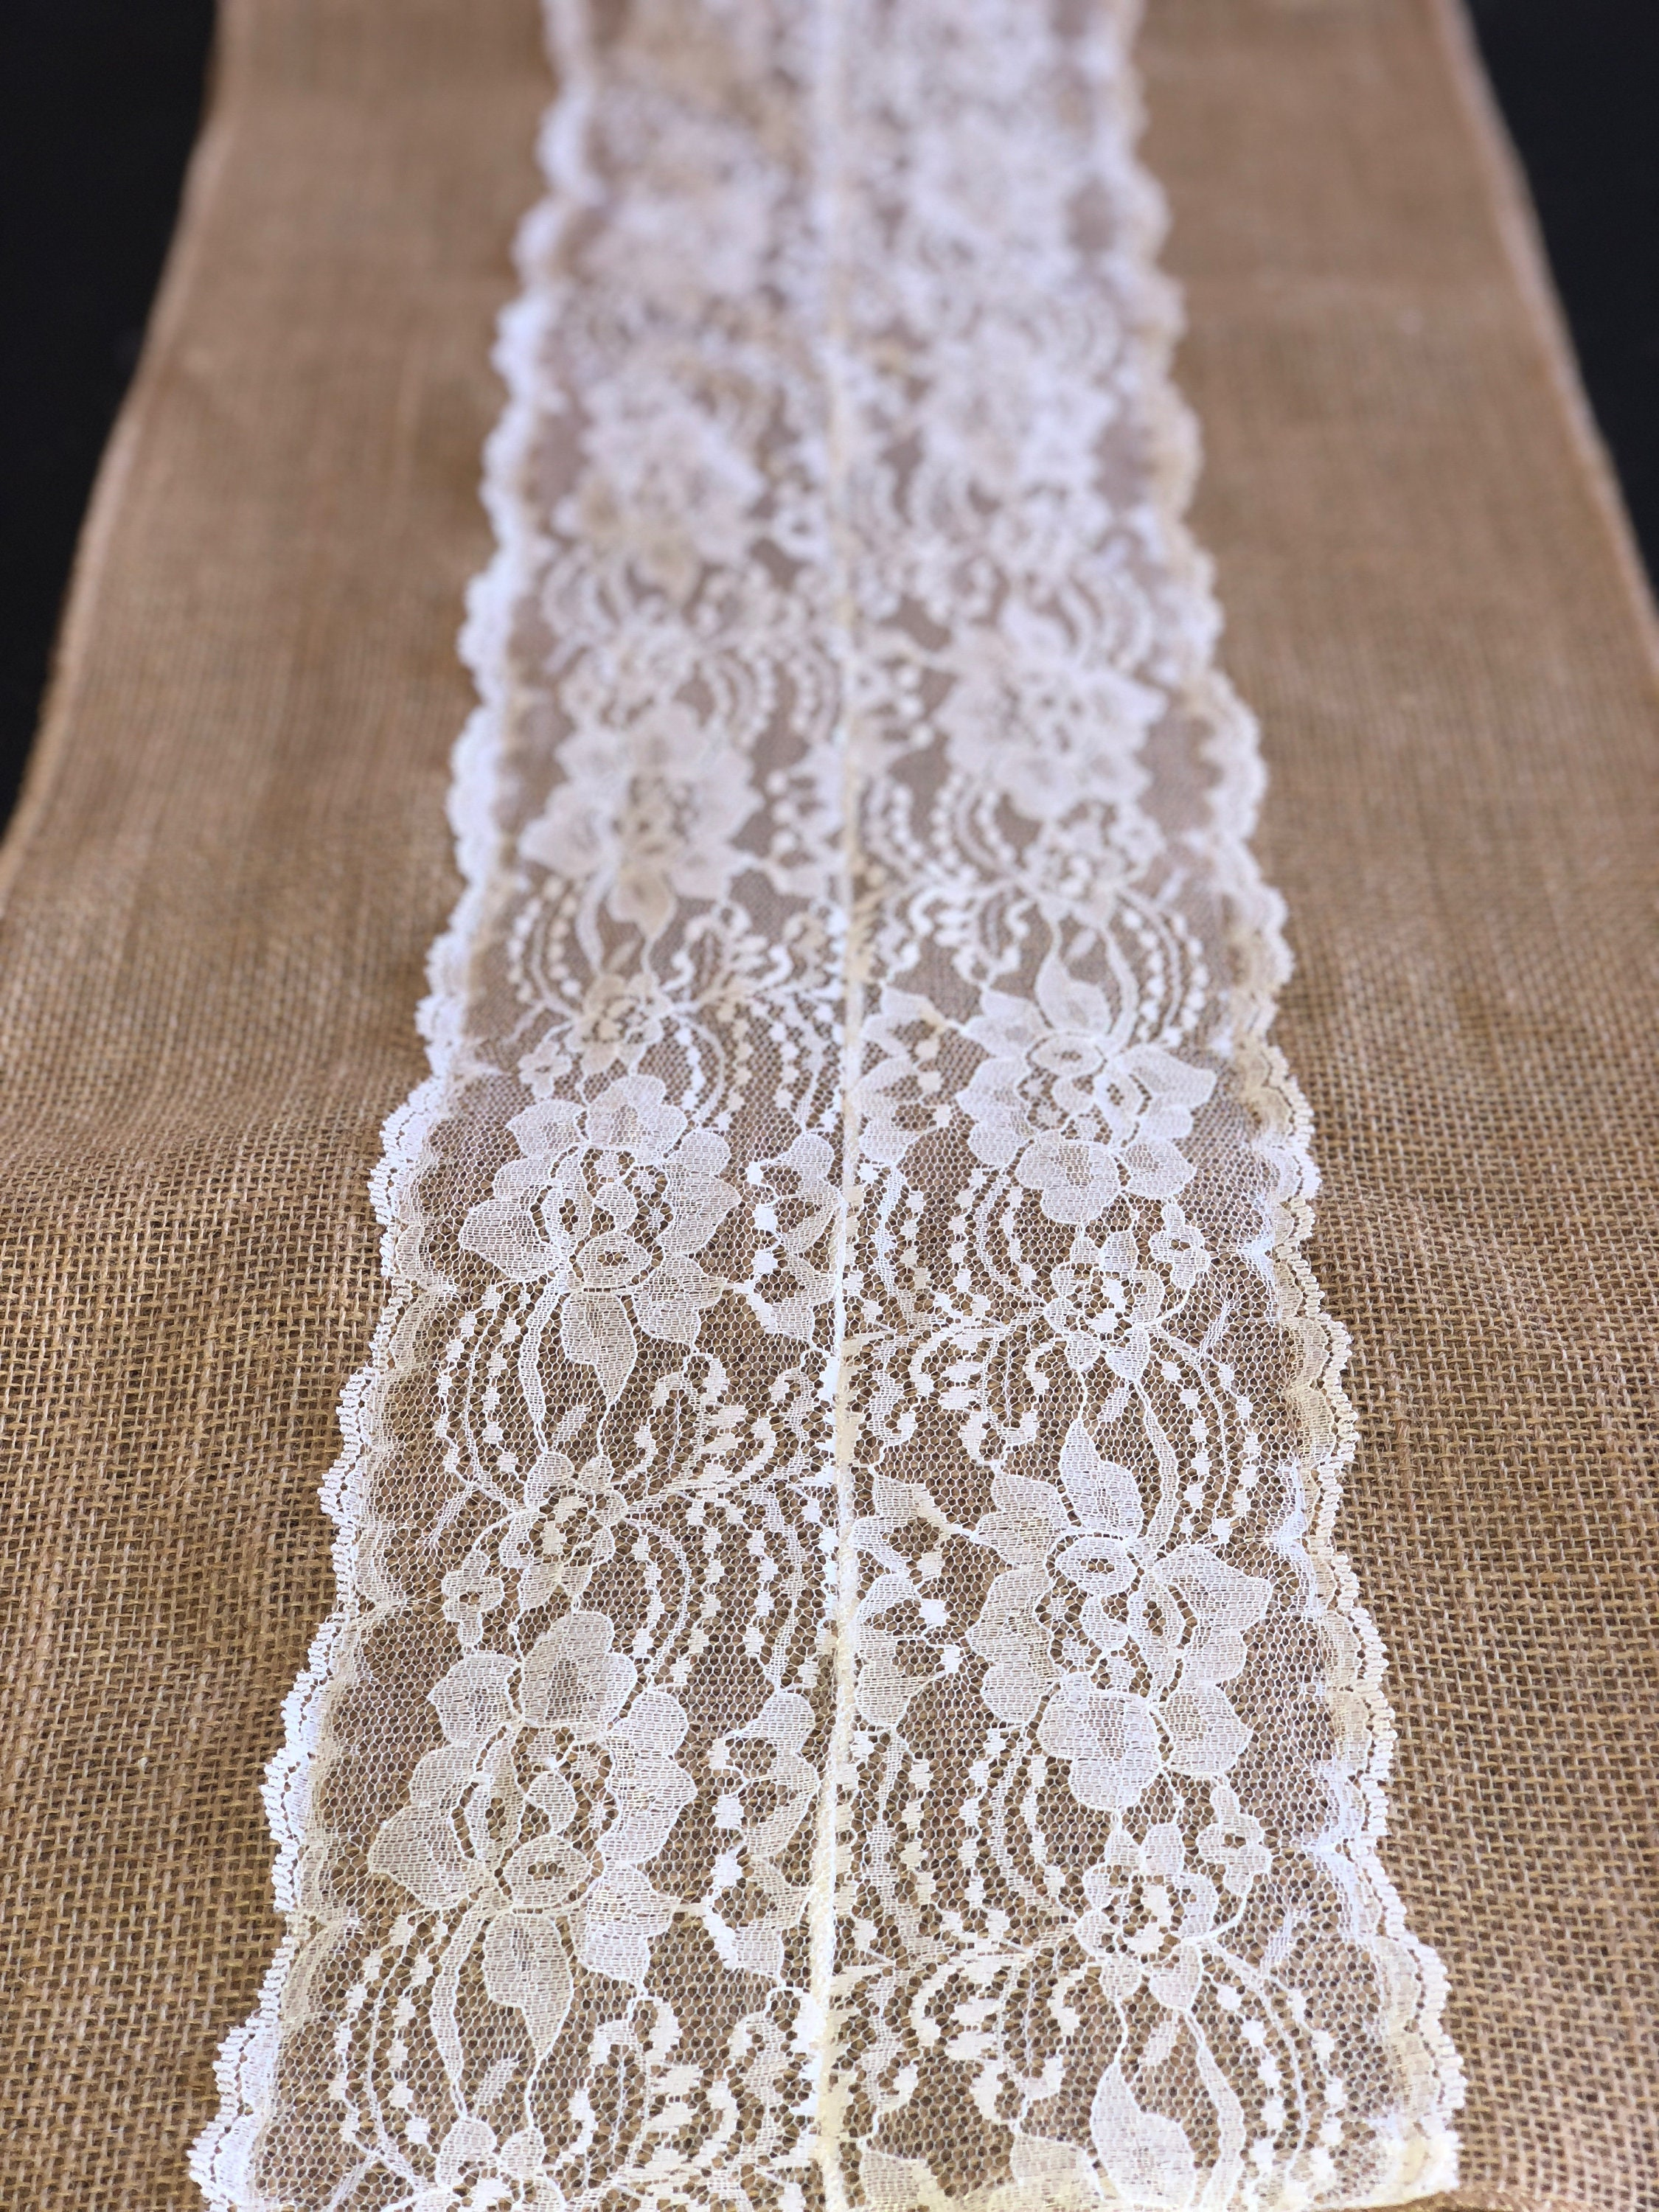 Graduation, Graduation Decor, Burlap Table Runner With Lace For Dining Table,  Wedding, Party, Or Bridal Shower. Rustic Decor.